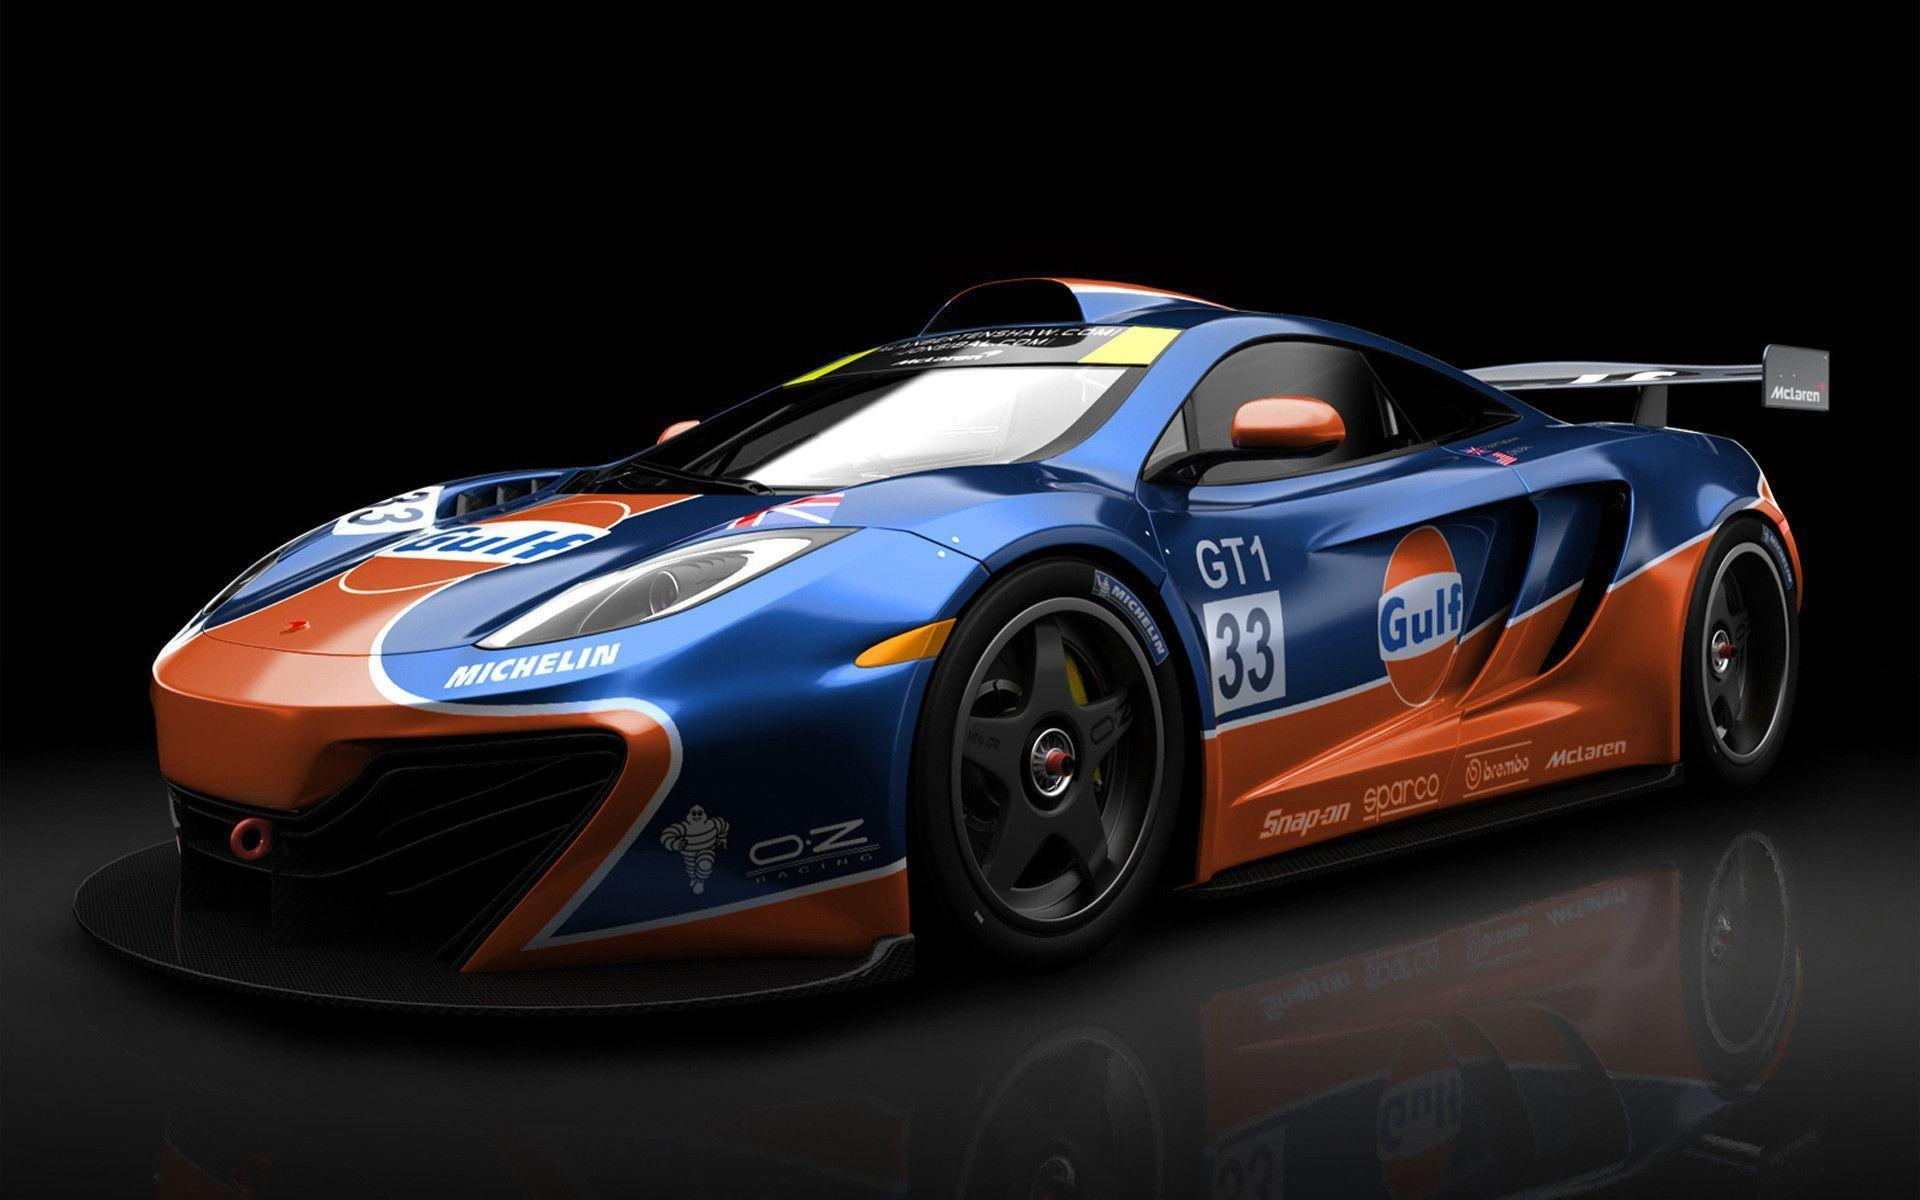 mclaren mp4 12c gt1 hd widescreen sport car wallpapers - | My ...